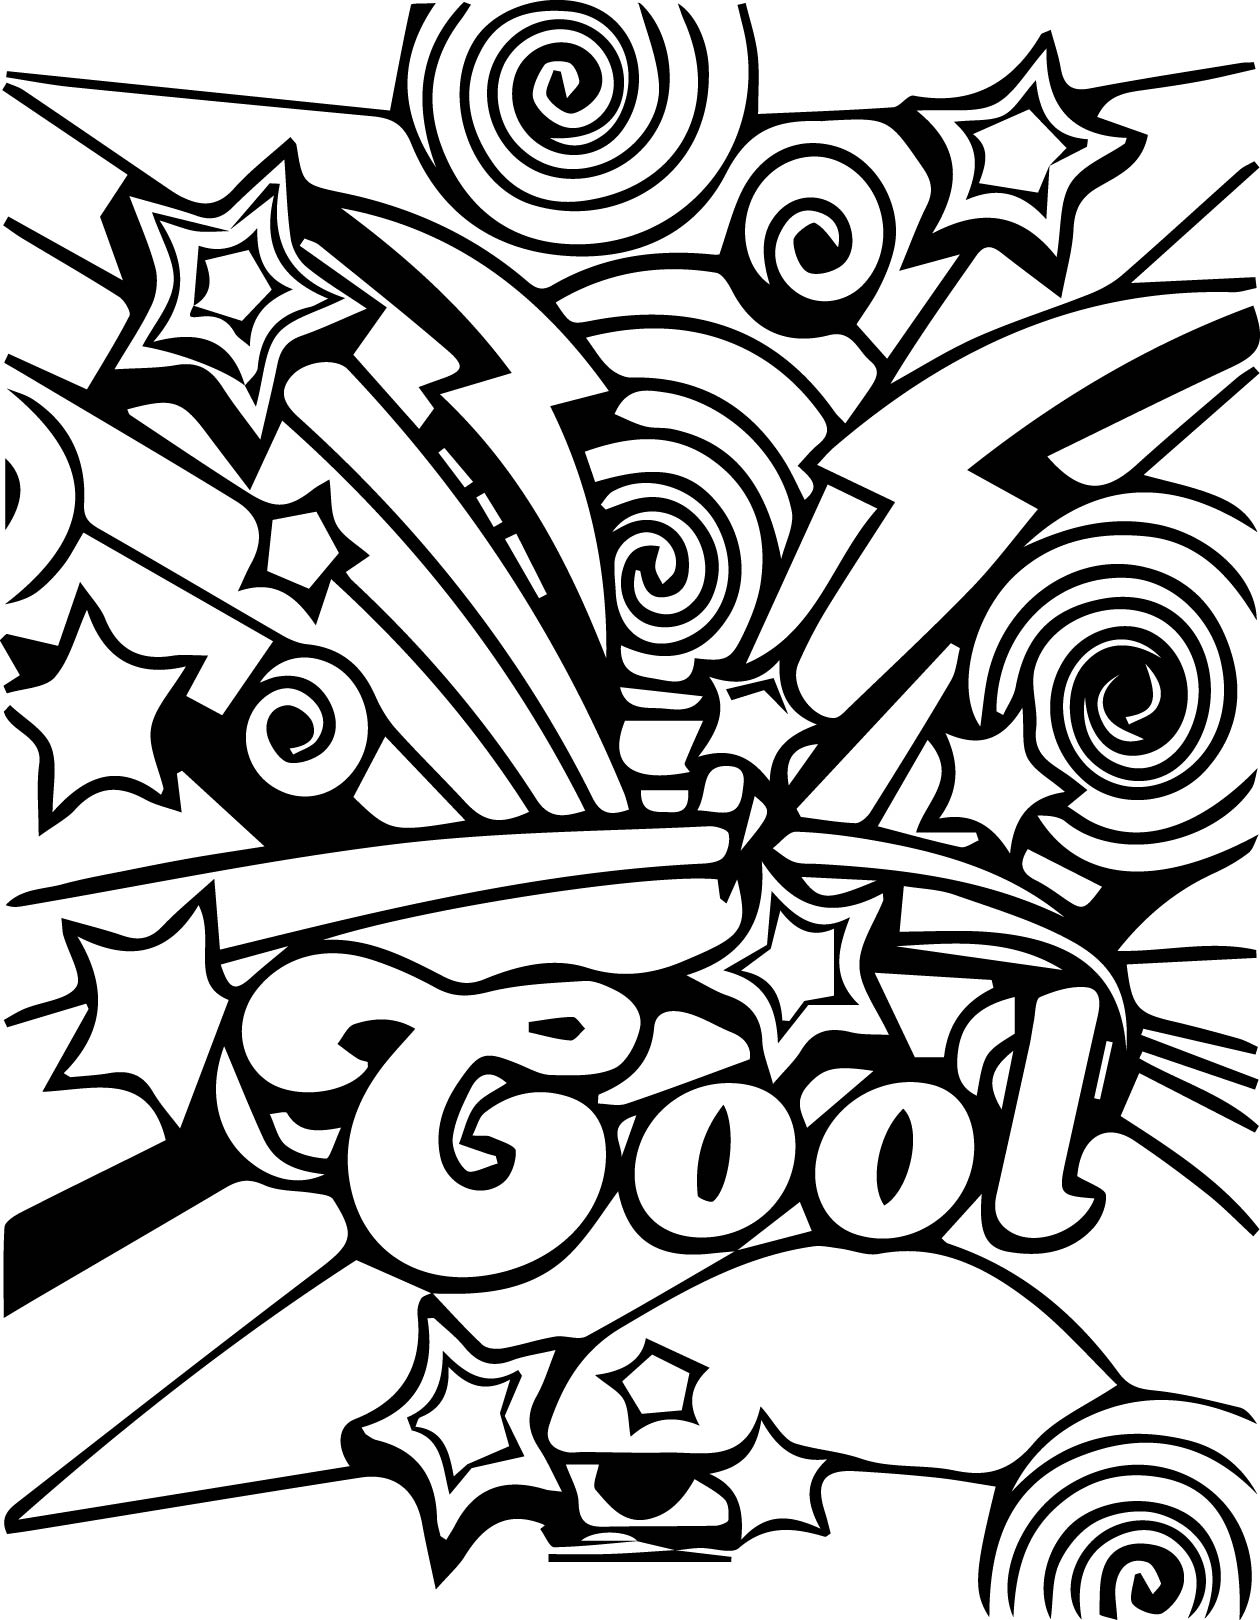 free printable coloring pages for adults and kids valentines day coloring pages for adults best coloring and kids free printable pages coloring adults for